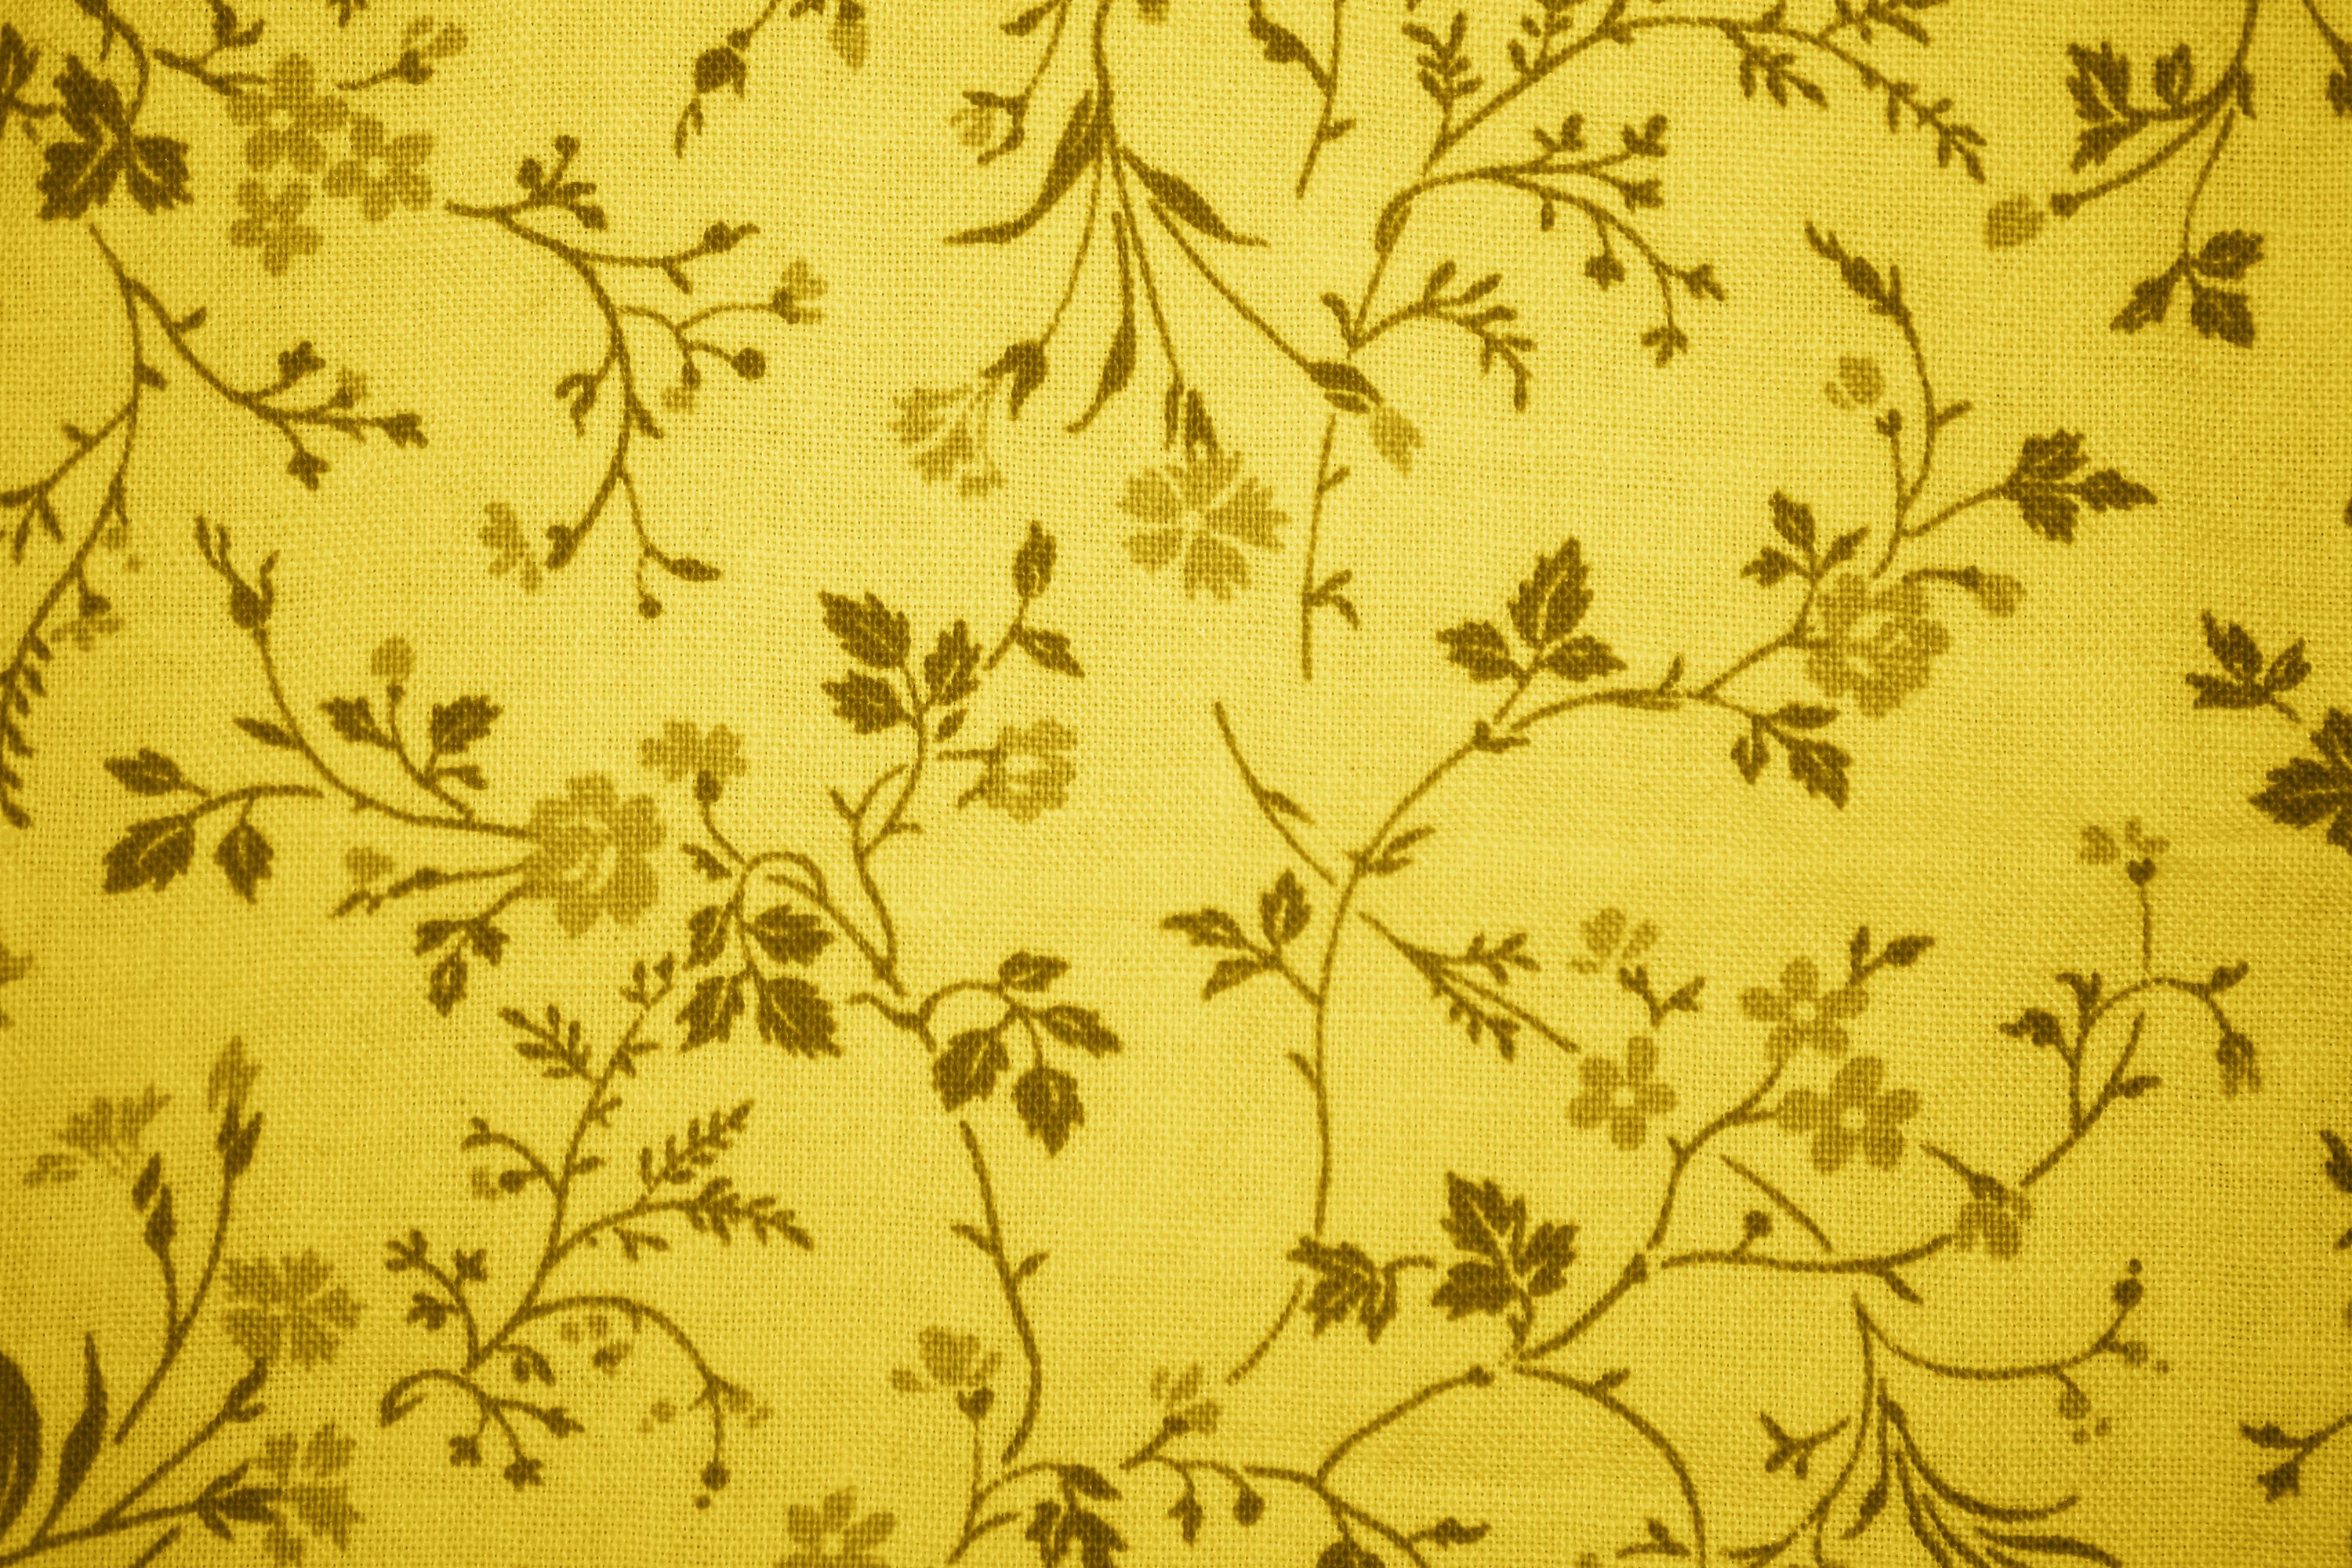 Gold Floral Print Fabric Texture